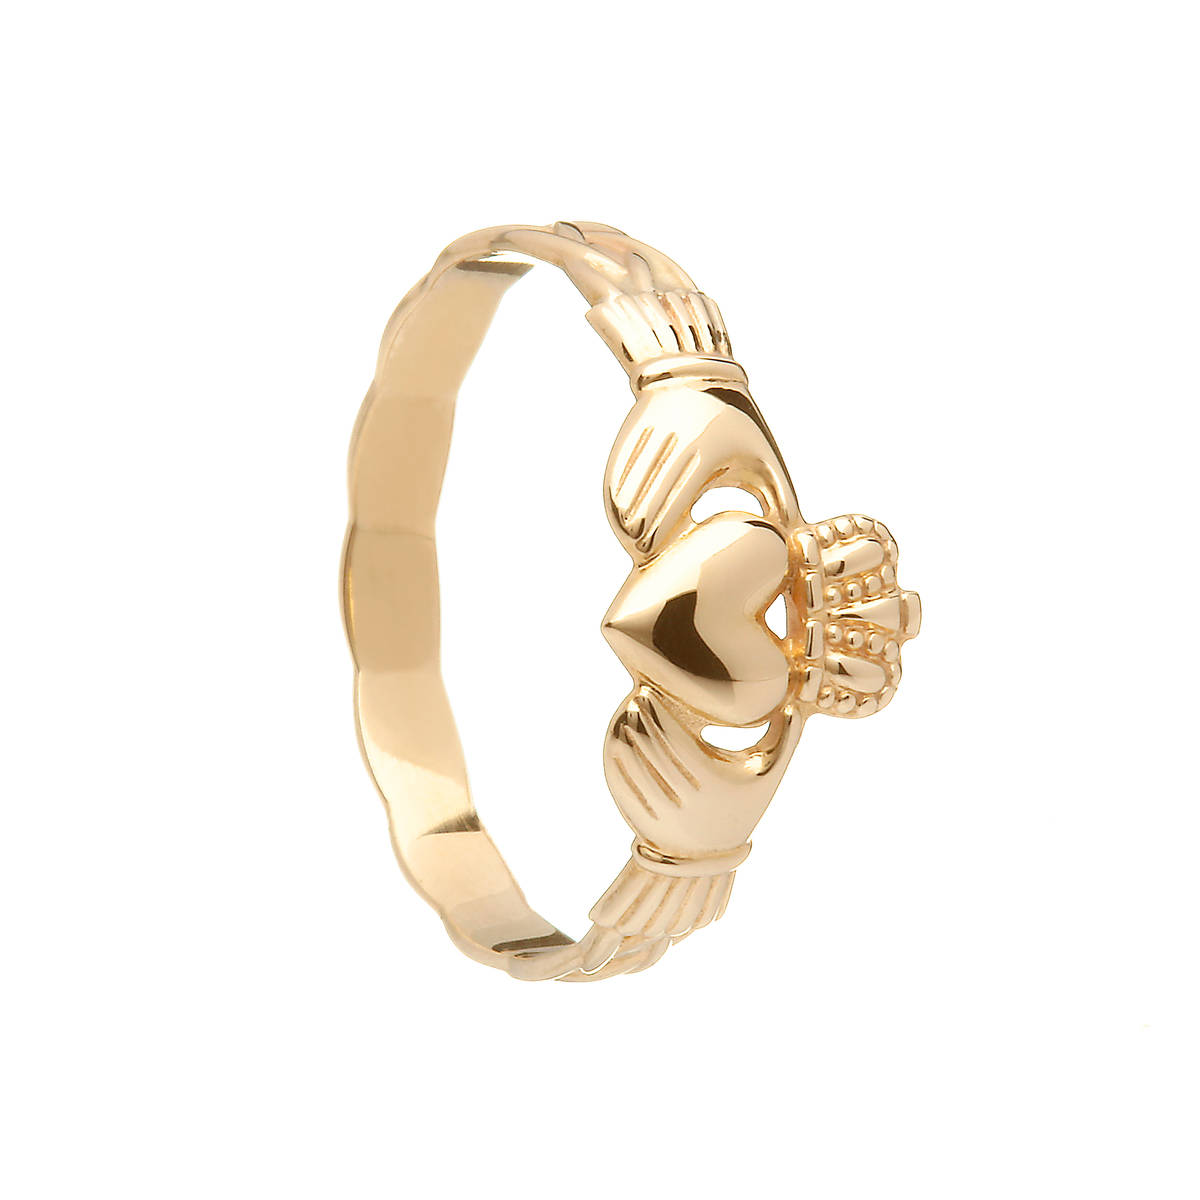 10ct Yellow Gold Maids Traditional Claddagh Ring With Braided Band 9mm